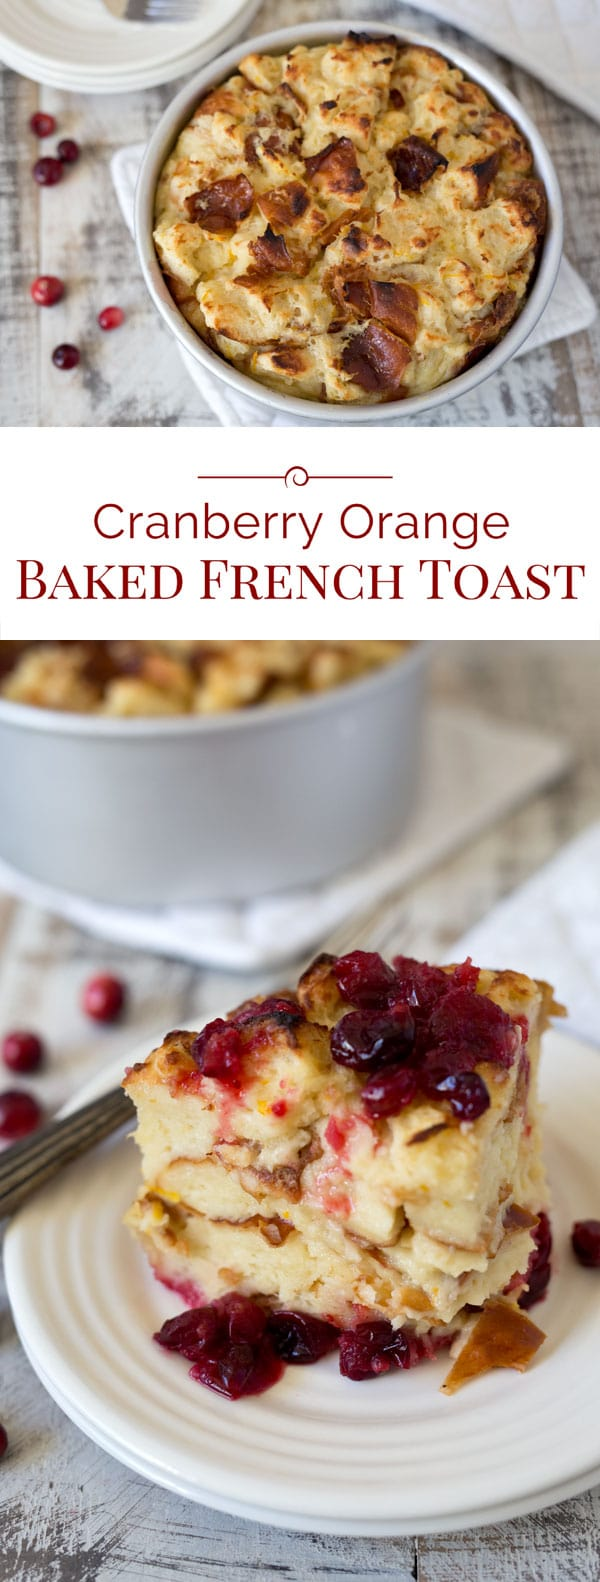 "This luscious Pressure Cooker Cranberry Baked French Toast is a perfect holiday breakfast. Tart fresh cranberries in a sweet orange sauce are topped with cubed Challah bread soaked in butter, milk, and eggs, and then ""baked\"" to create a bread pudding style French Toast."